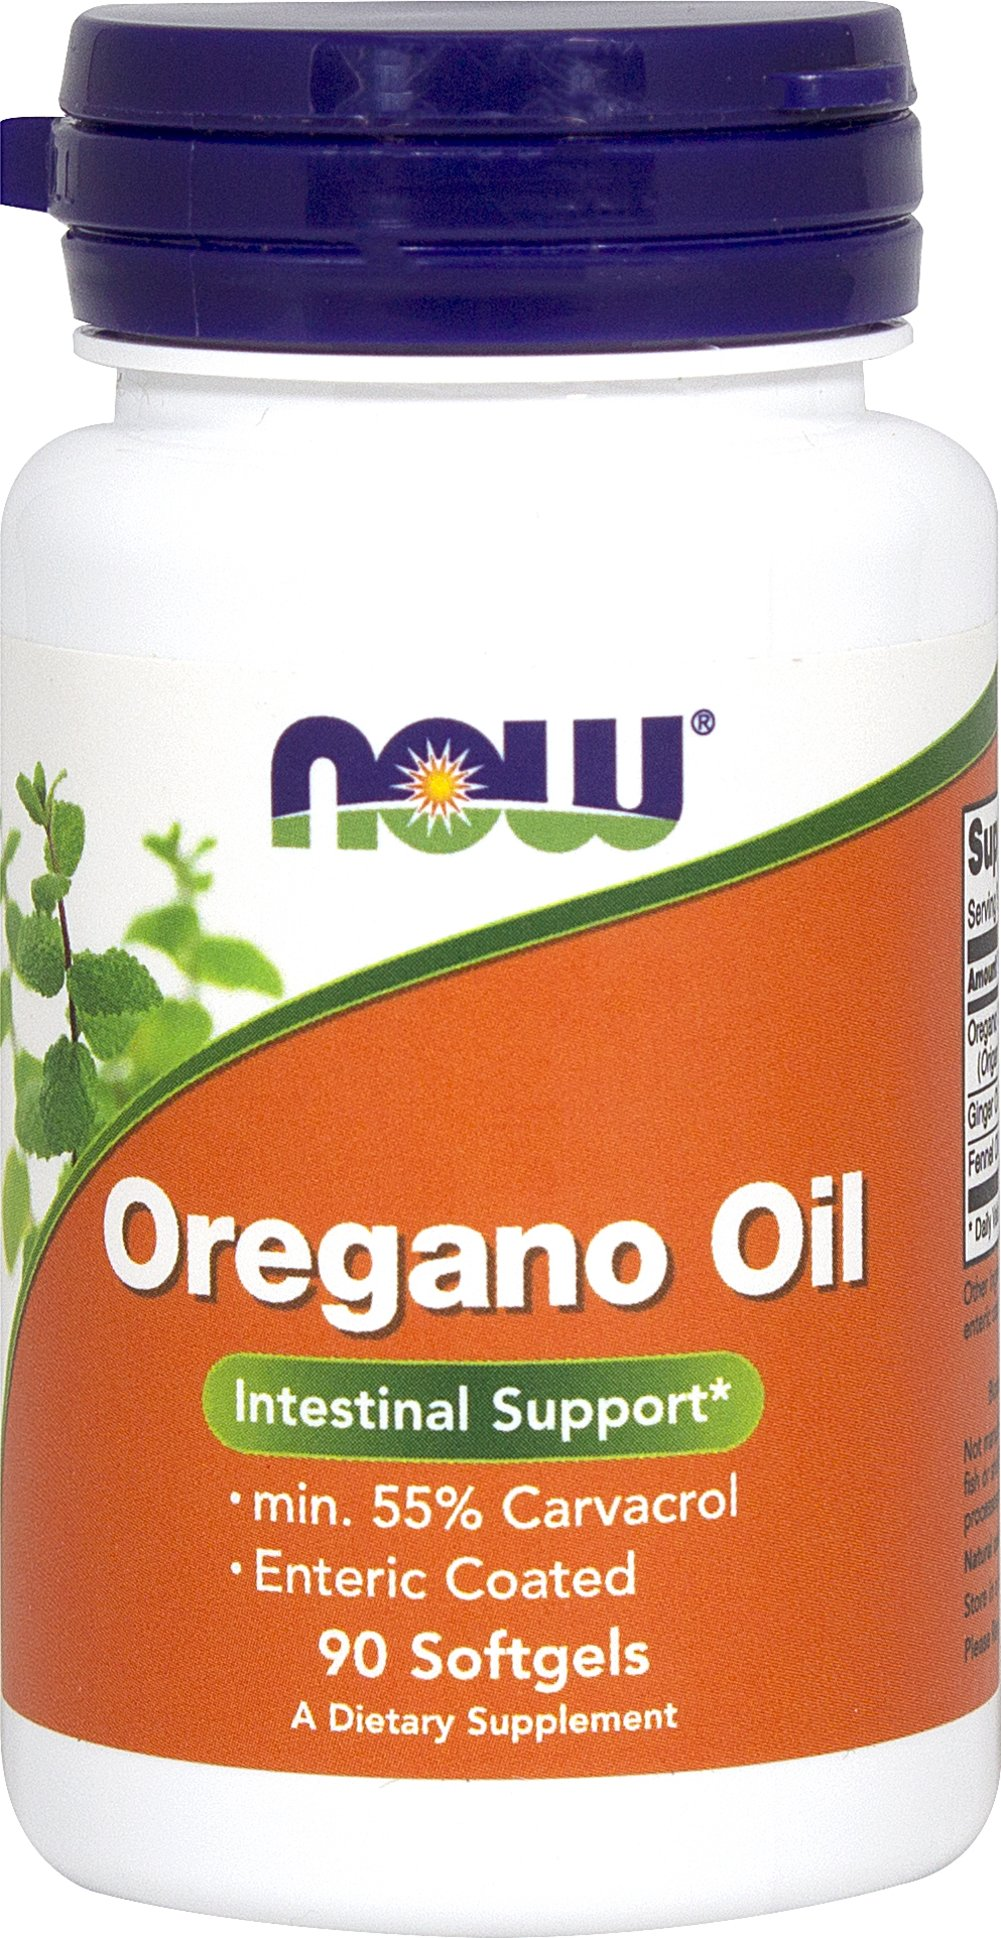 Oregano Oil Thumbnail Alternate Bottle View